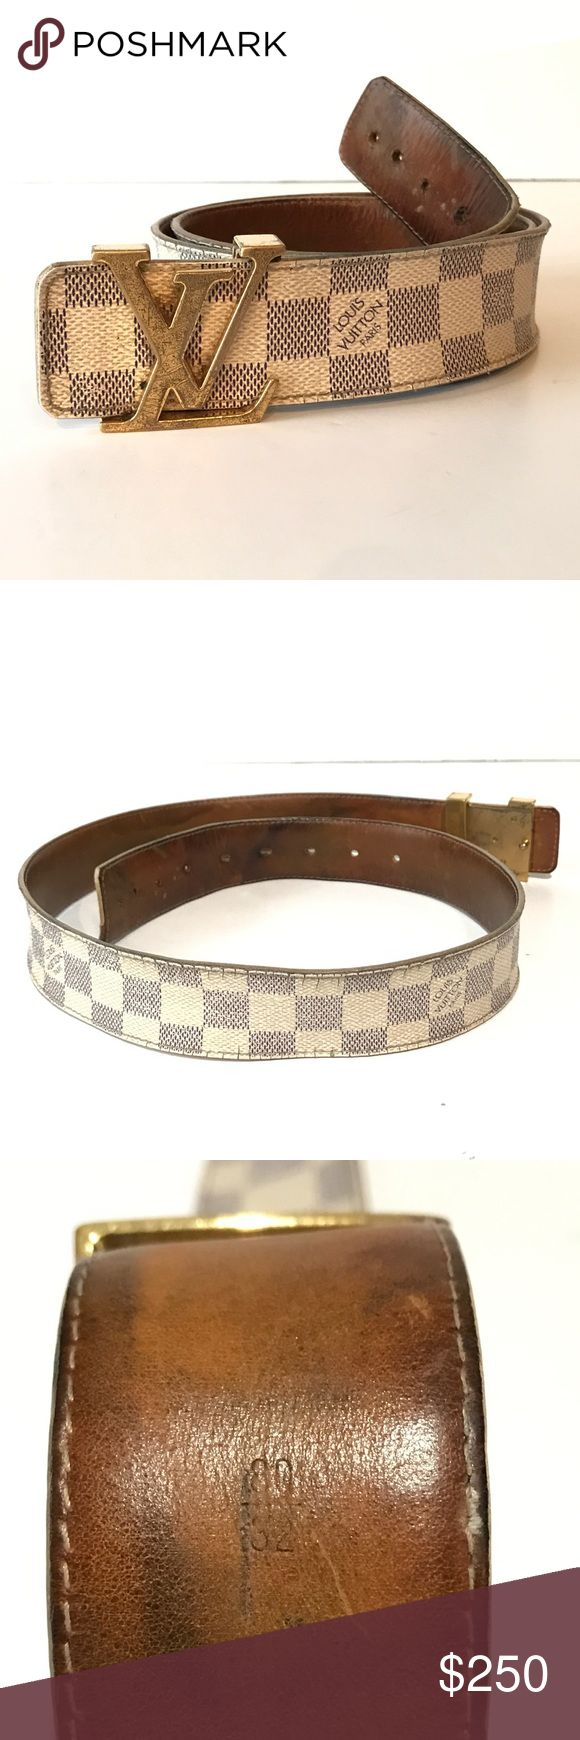 Authentic Mens Gold LV Initials 40mm DA Belt 80/32 100% Authentic Men's Gold LV Initials 40mm DA Belt 80/32  Size: 80/32 (2 extra holes punched to fit up to size 34) Color: DA Damier Azur Canvas Style: 40mm Gold Buckle 40mm LV Initials Belt Gender: Men / Women / Unisex Condition: 3.5/10 (very worn but still usable, see pics)  Made in Spain Date Code: CA1027 (December 2007)  Like us on Facebook! @ModaByBoutique Moda Boutique SF Louis Vuitton Accessories Belts